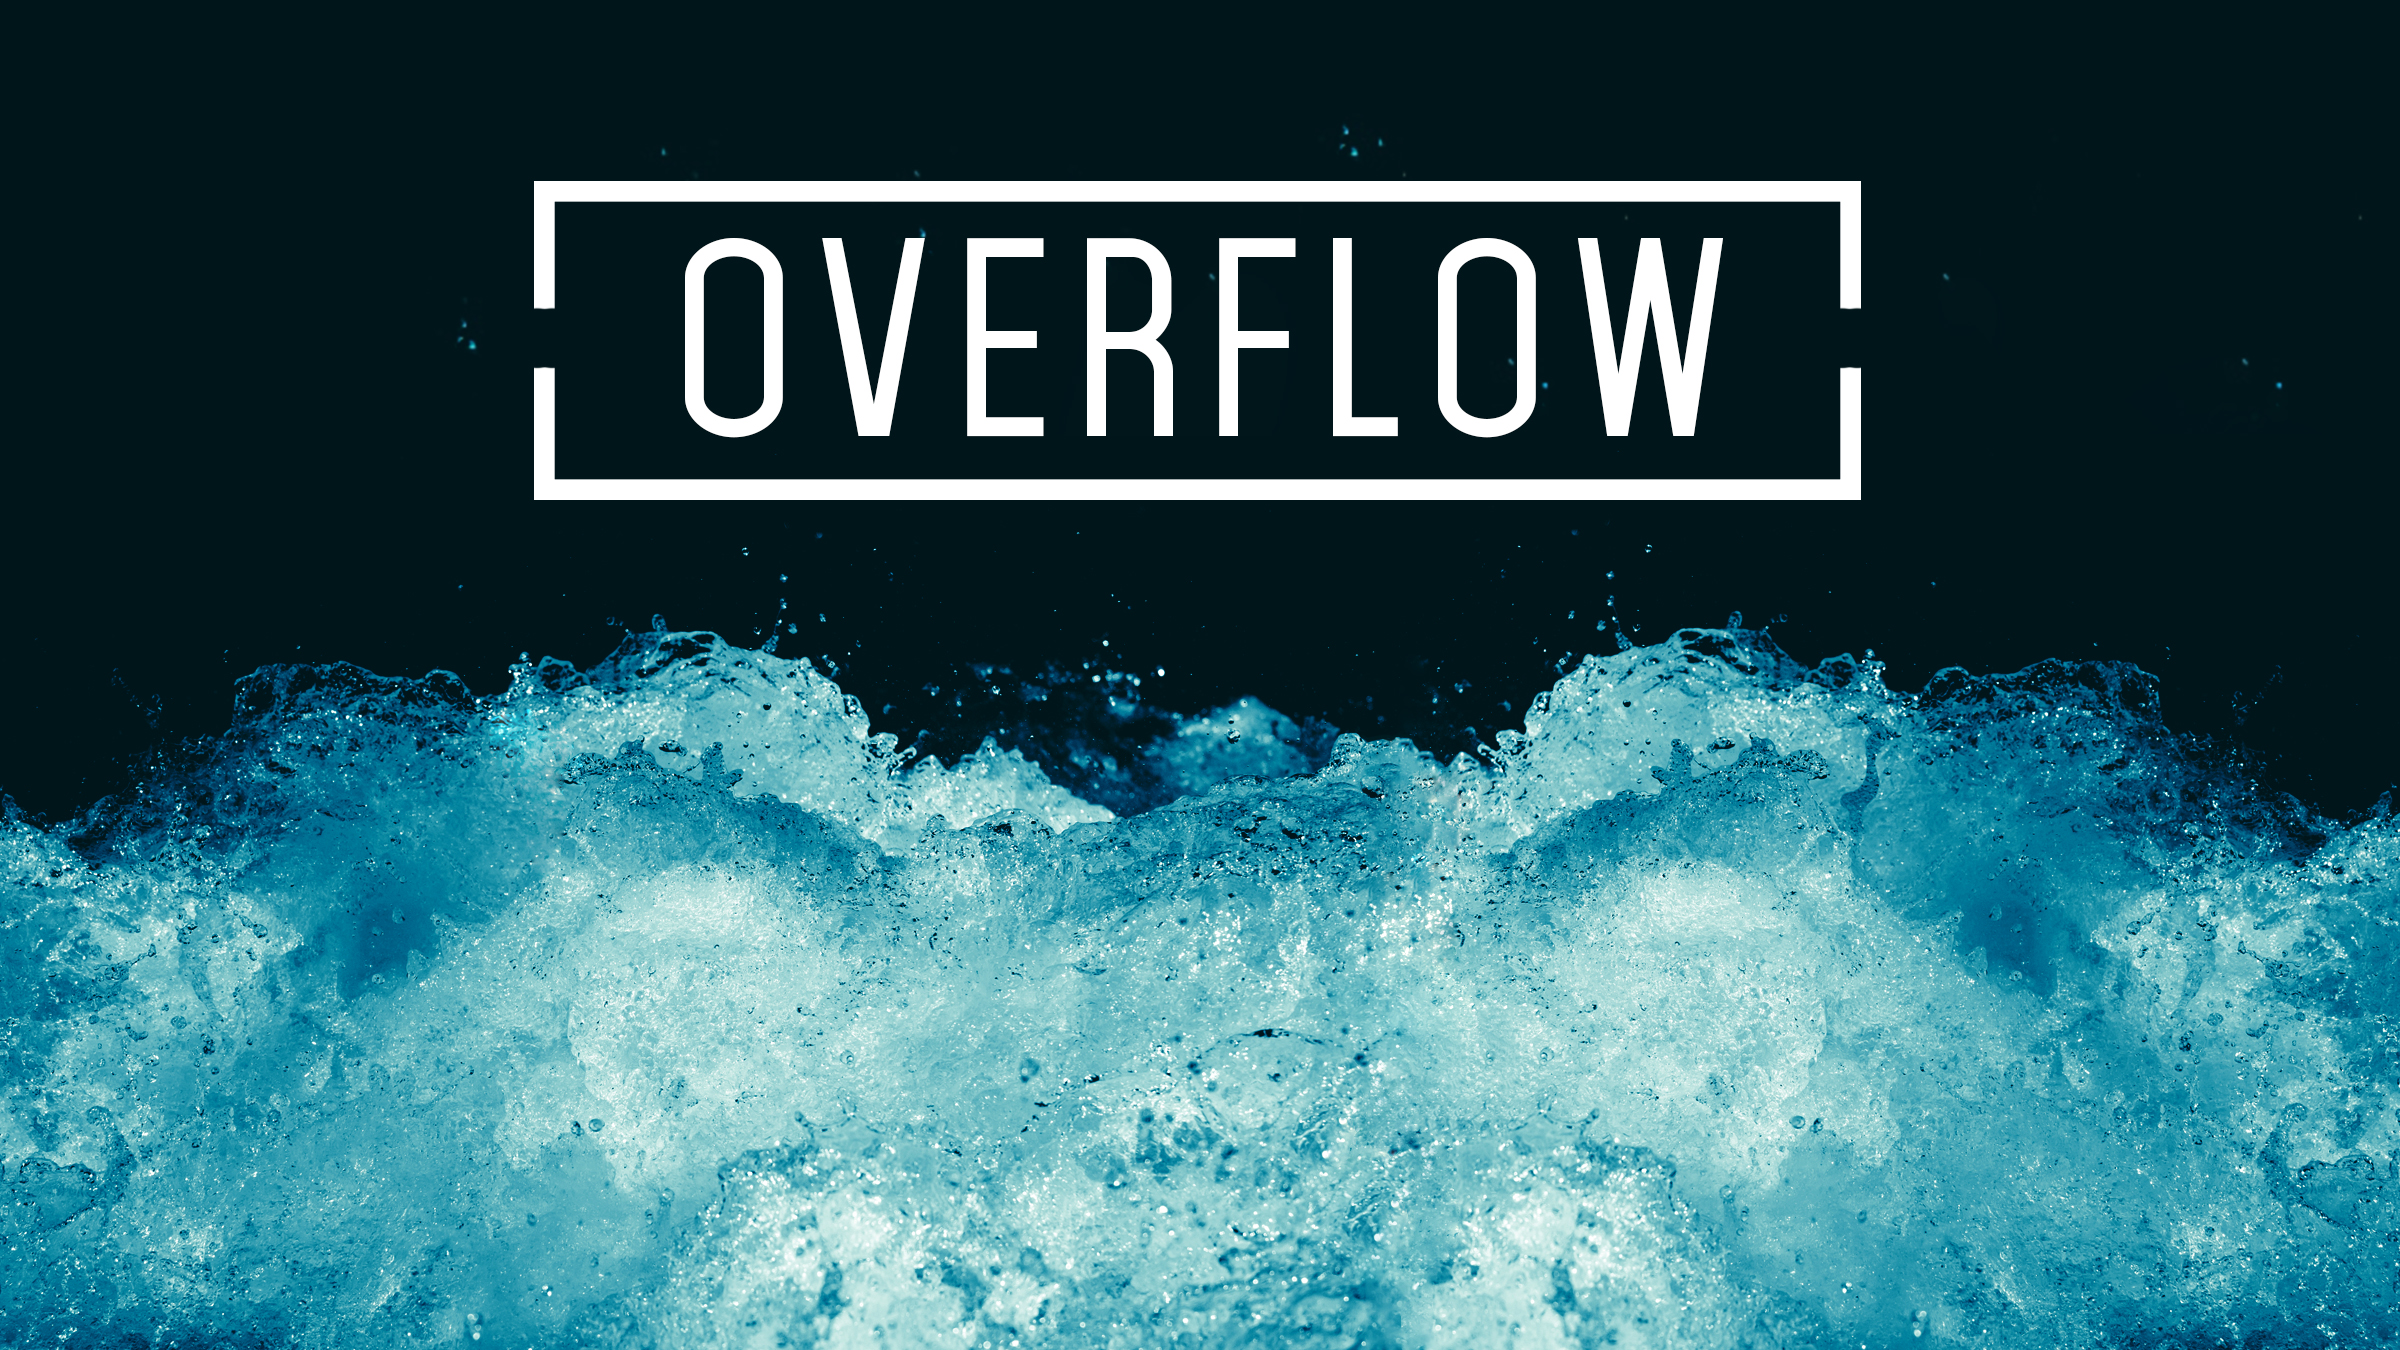 Overflow photo